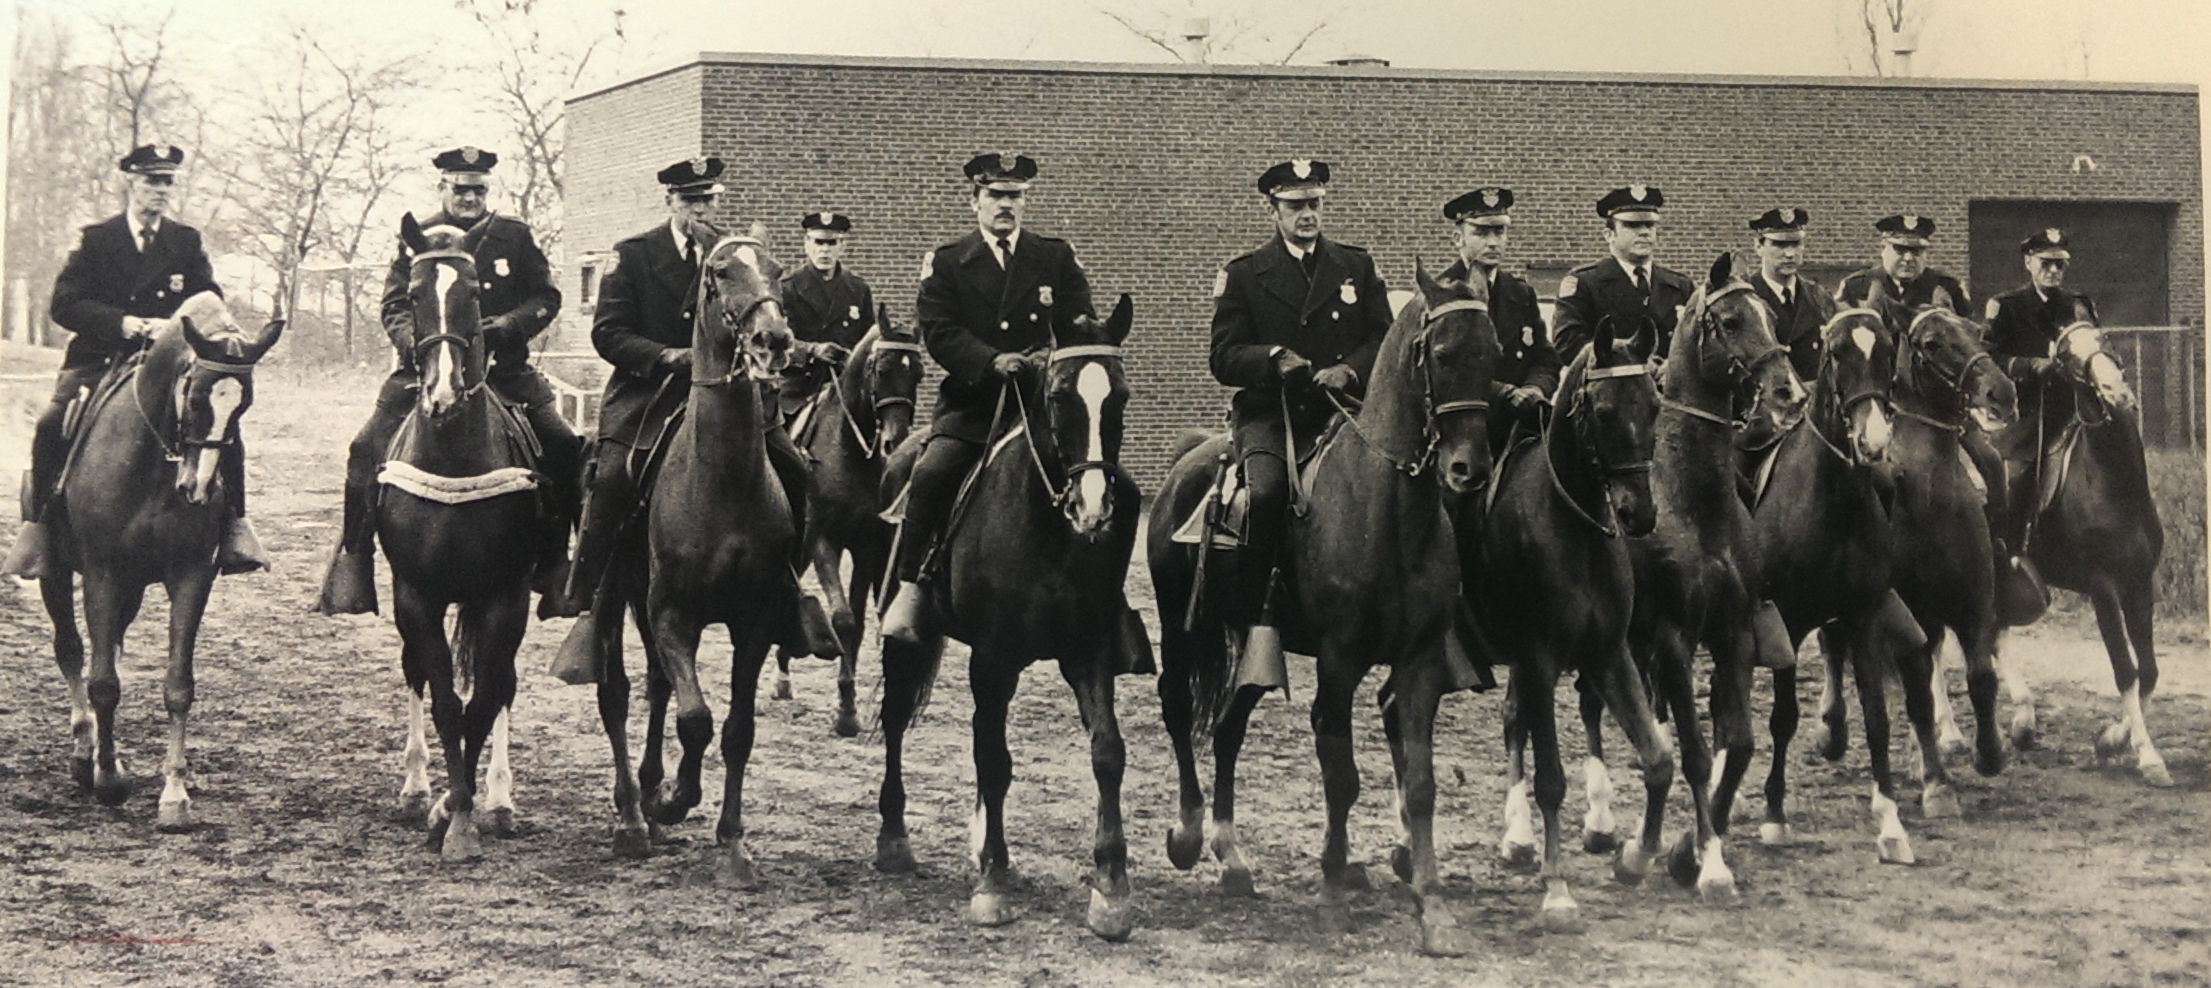 Mounted Unit 1975